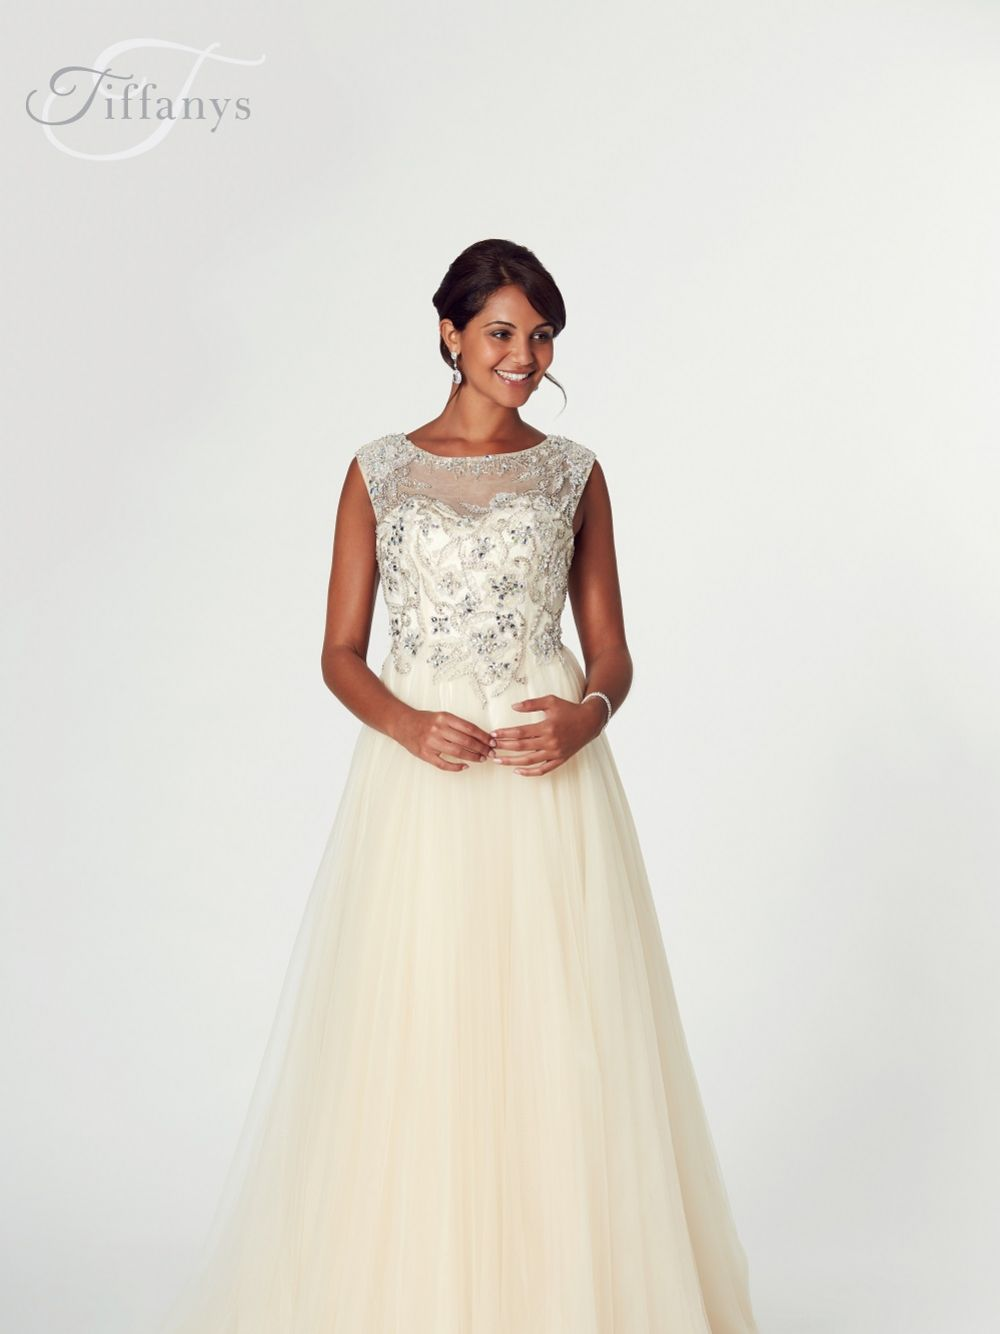 Tiffanys Illusion Prom Grace A Line Prom Dress with Beaded Bodice